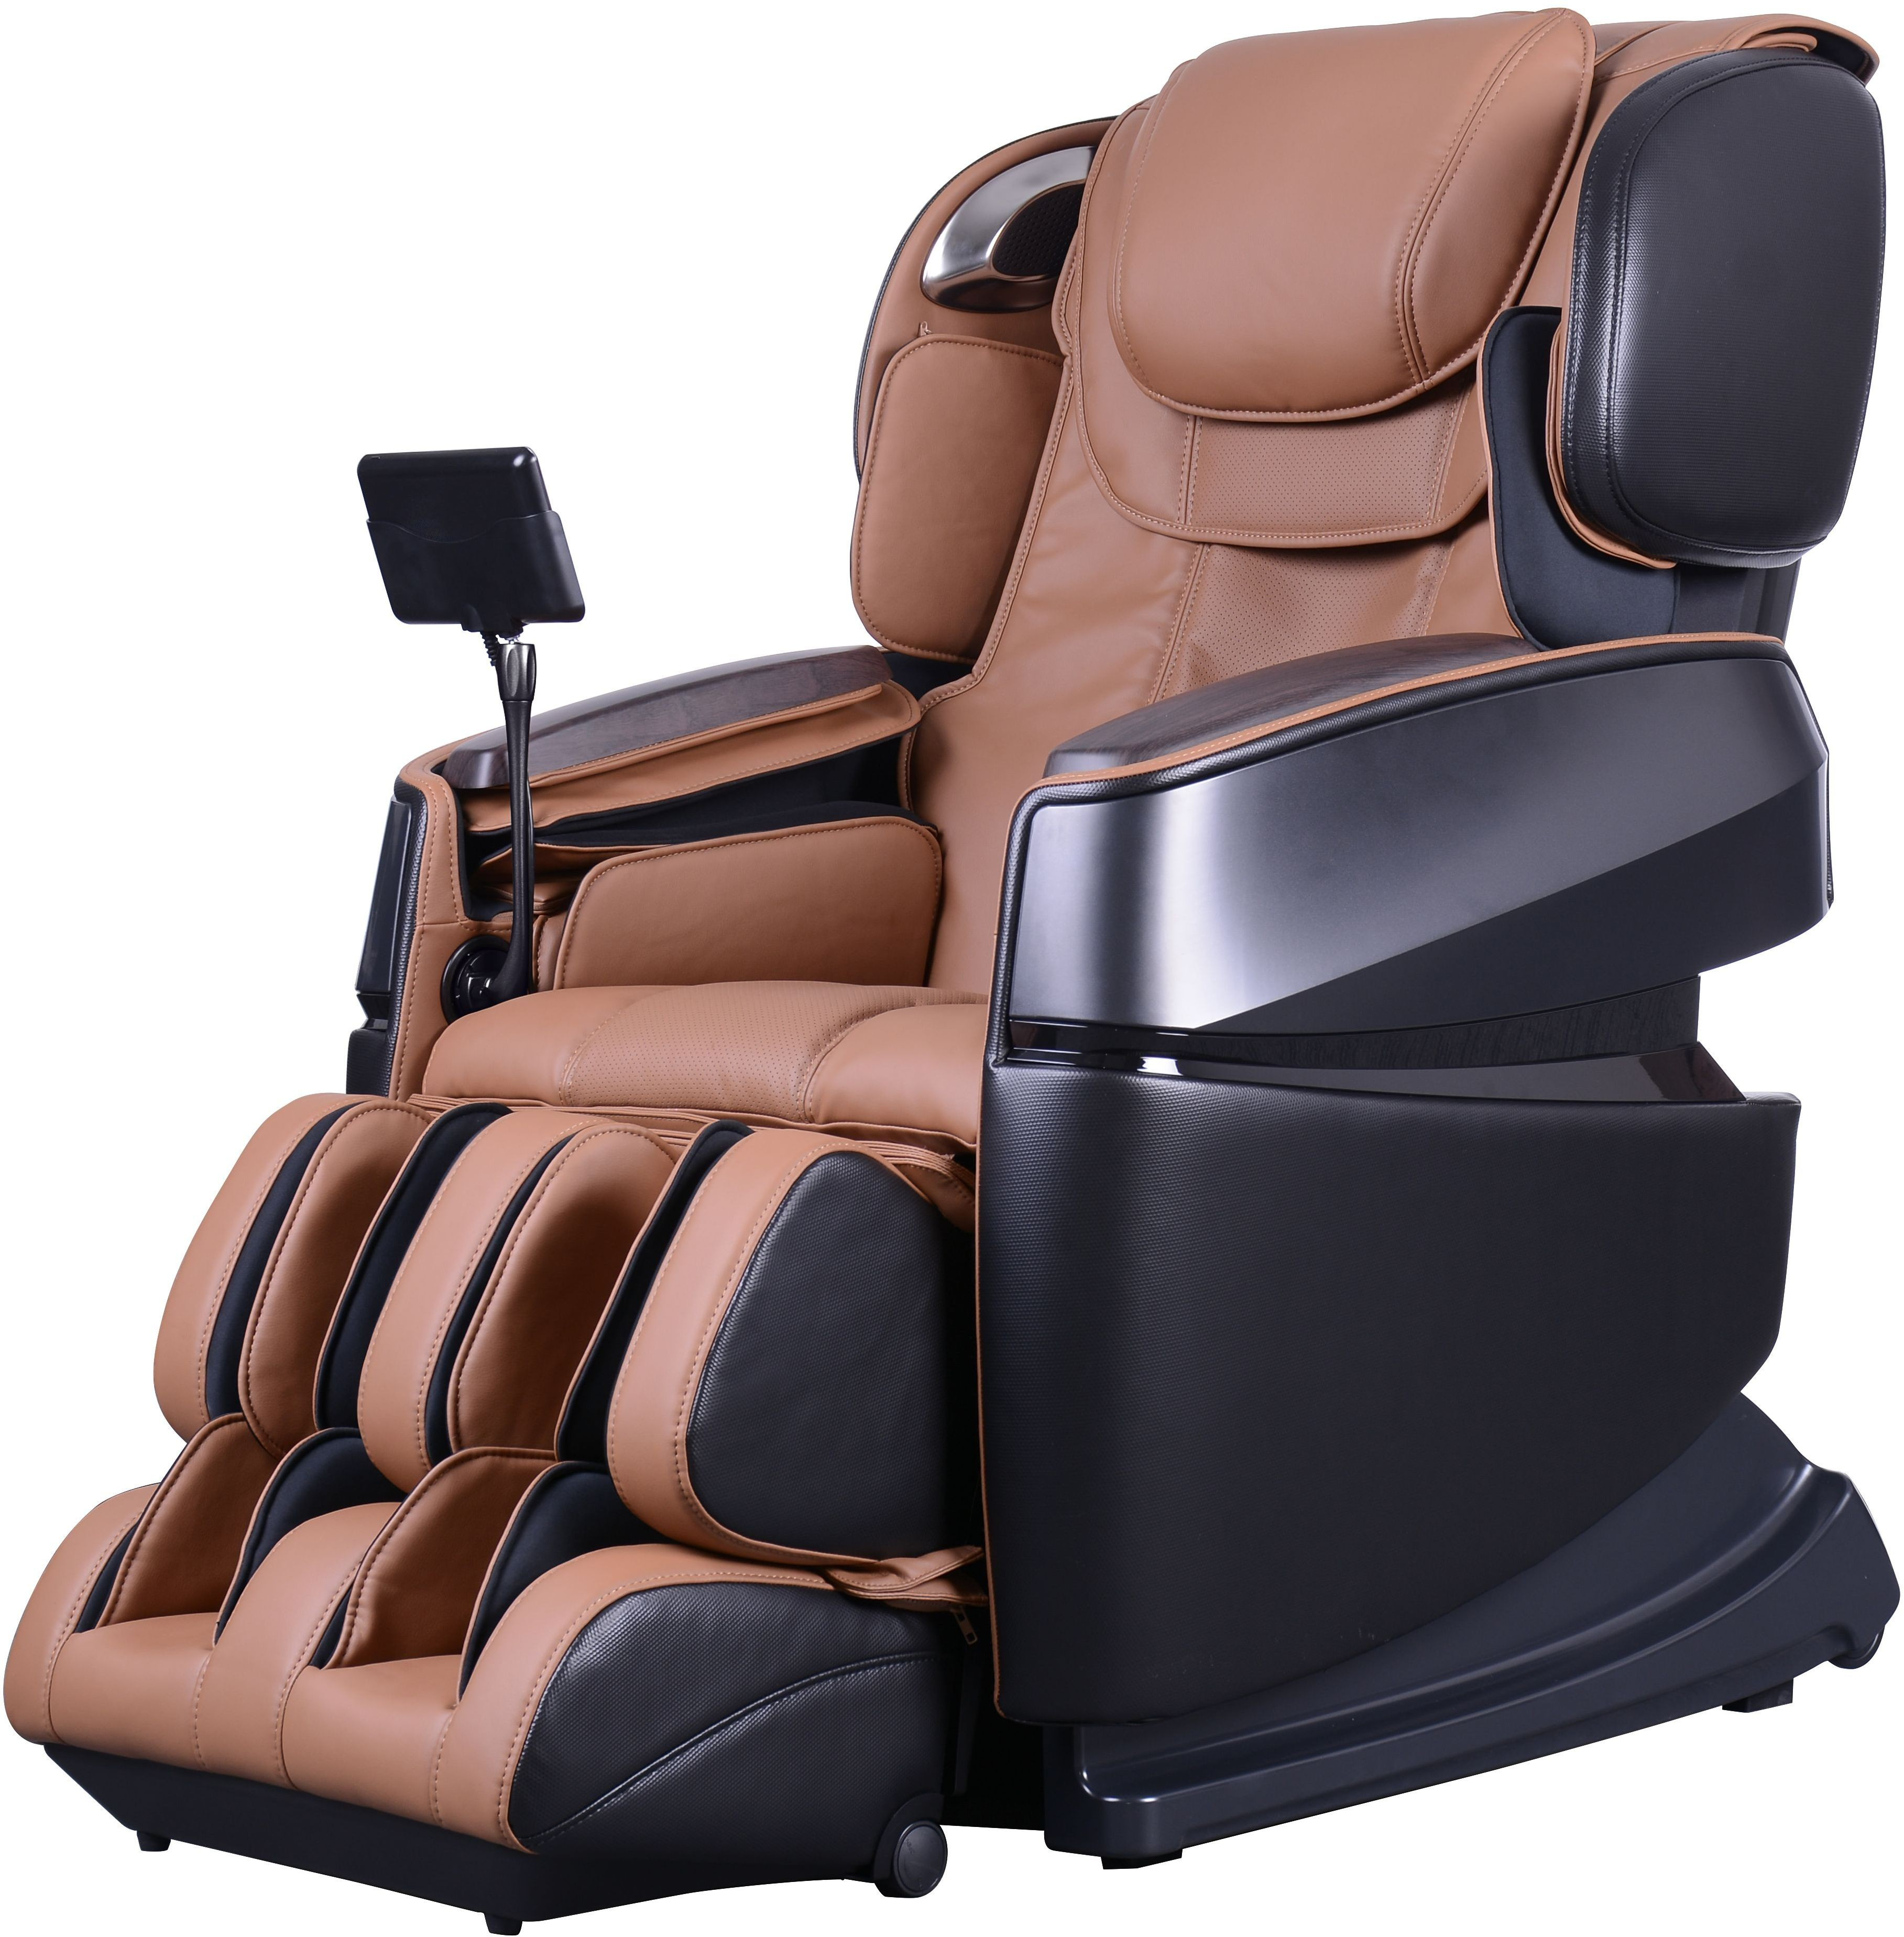 Ogawa Black and Cappuccino Touch 3D Massage Chair from Cozzia